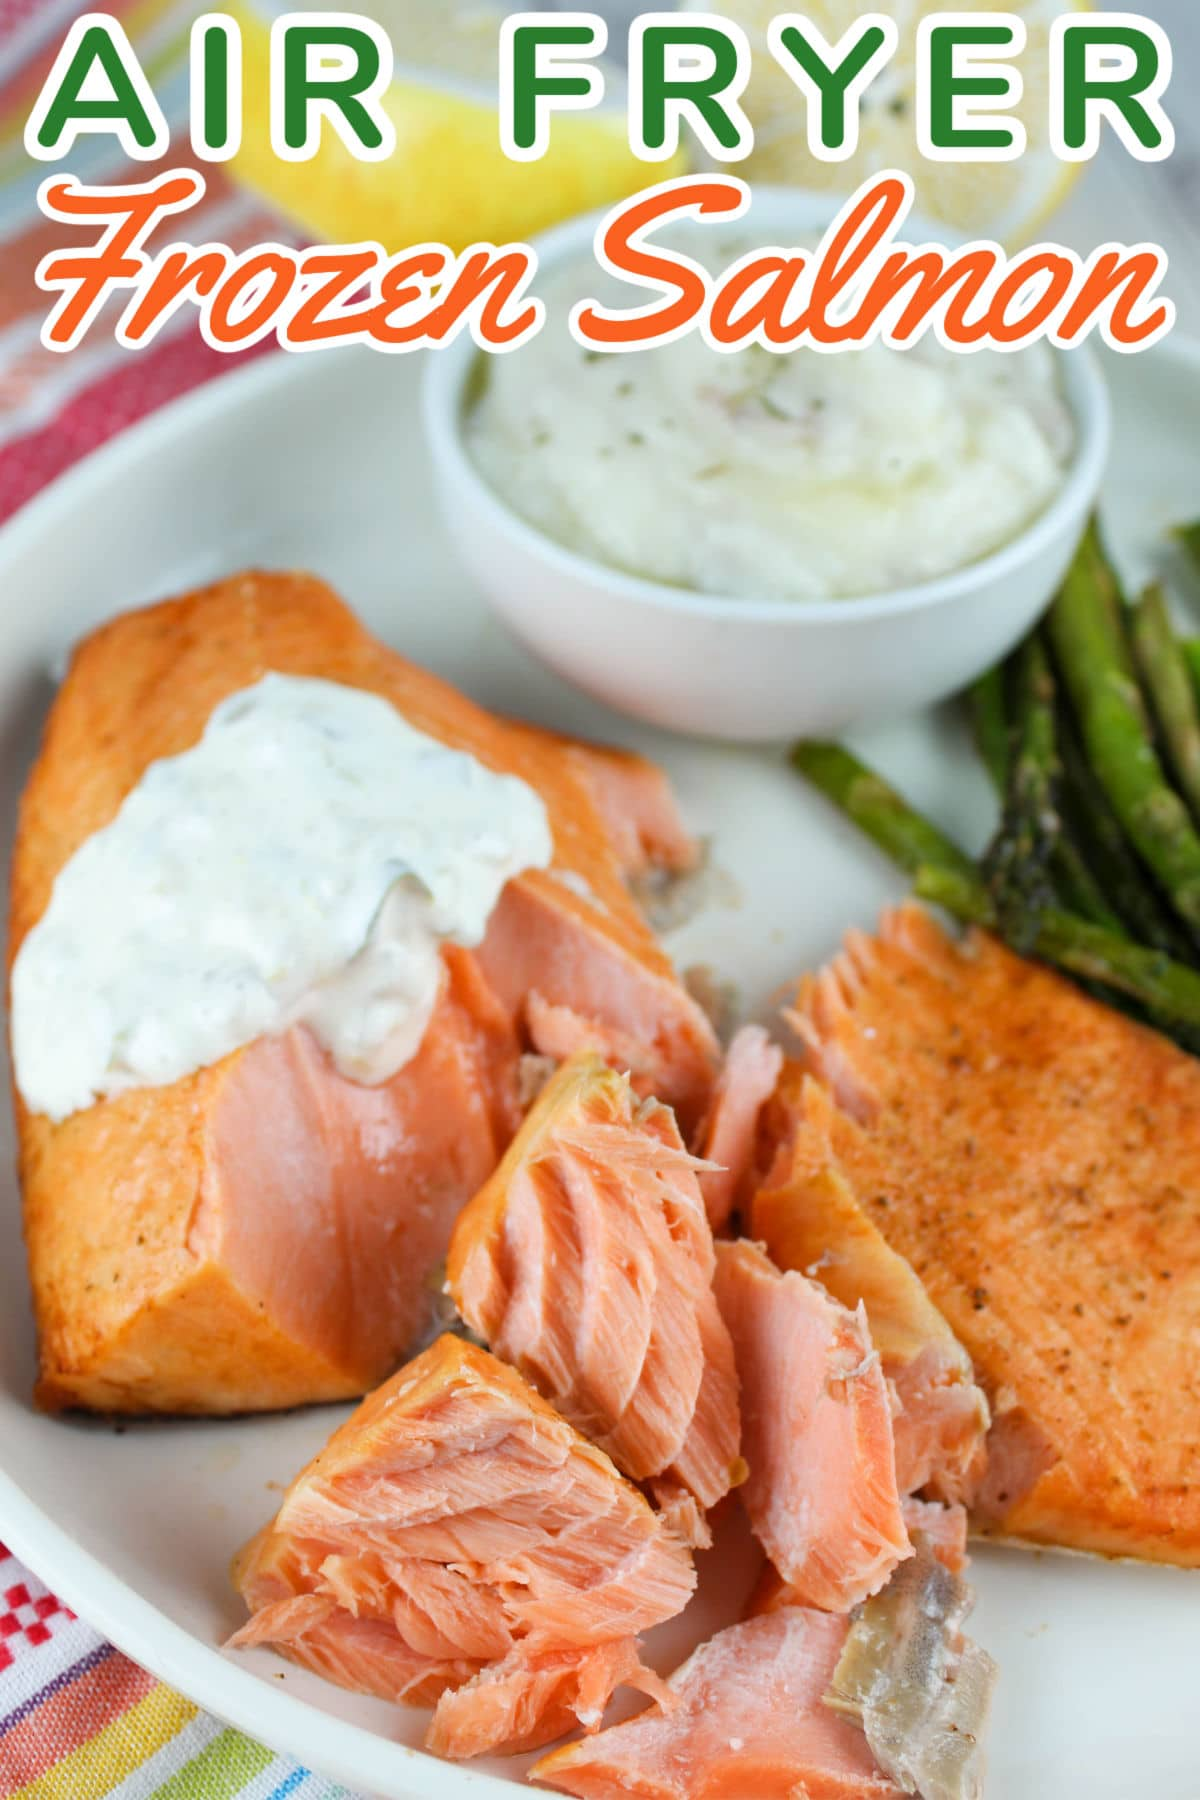 Frozen salmon in the air fryer is a great QUICK dinner when haven't done any planning! It's on the table in 15 minutes and you can even add veggies while the salmon is cooking. via @foodhussy